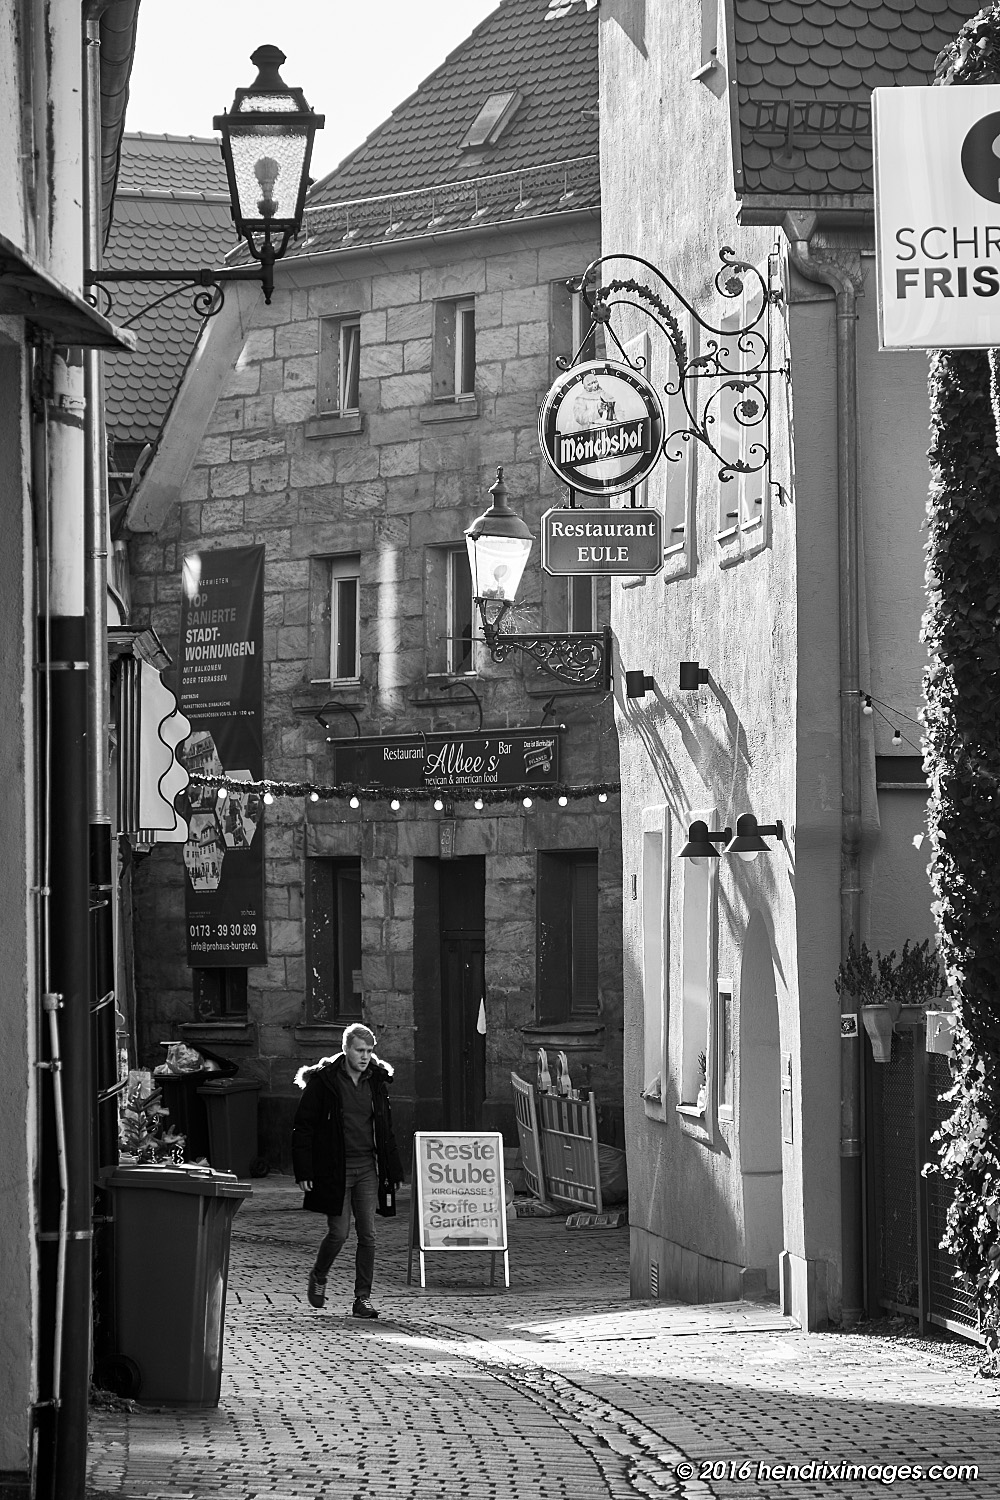 Backlit narrow street, seen with XF 18-135 mm @f8/105 mm (158 mm FF equ.)